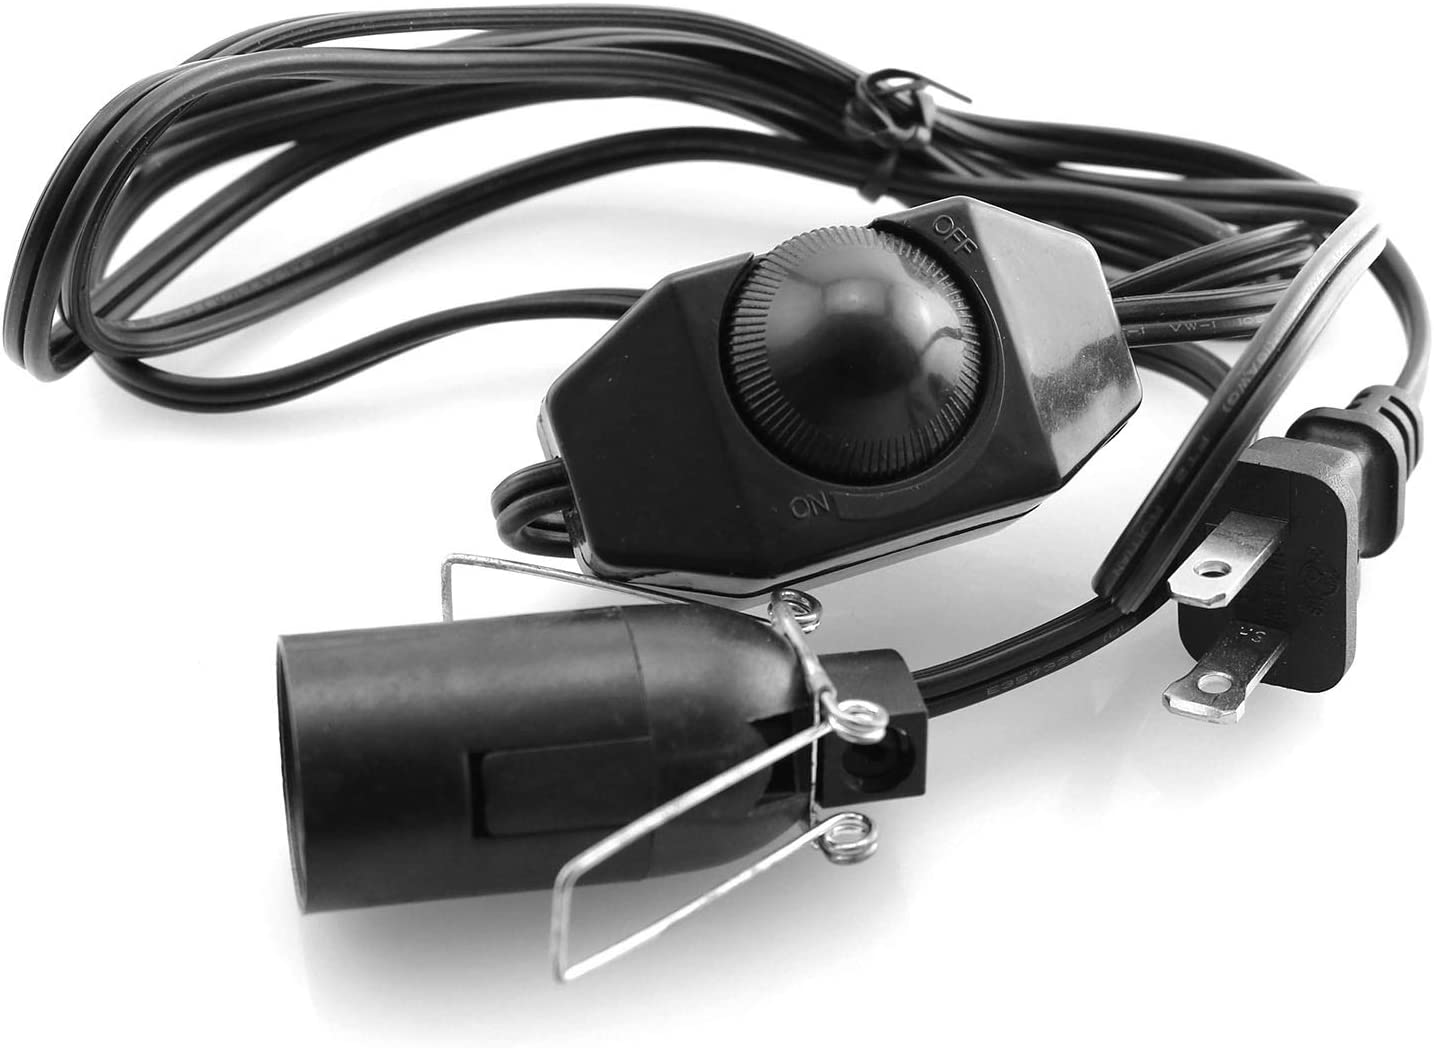 DGZZI Salt Lamp Cord 110V Black It is very popular 4.9ft Popular brand in the world Power Himalayan